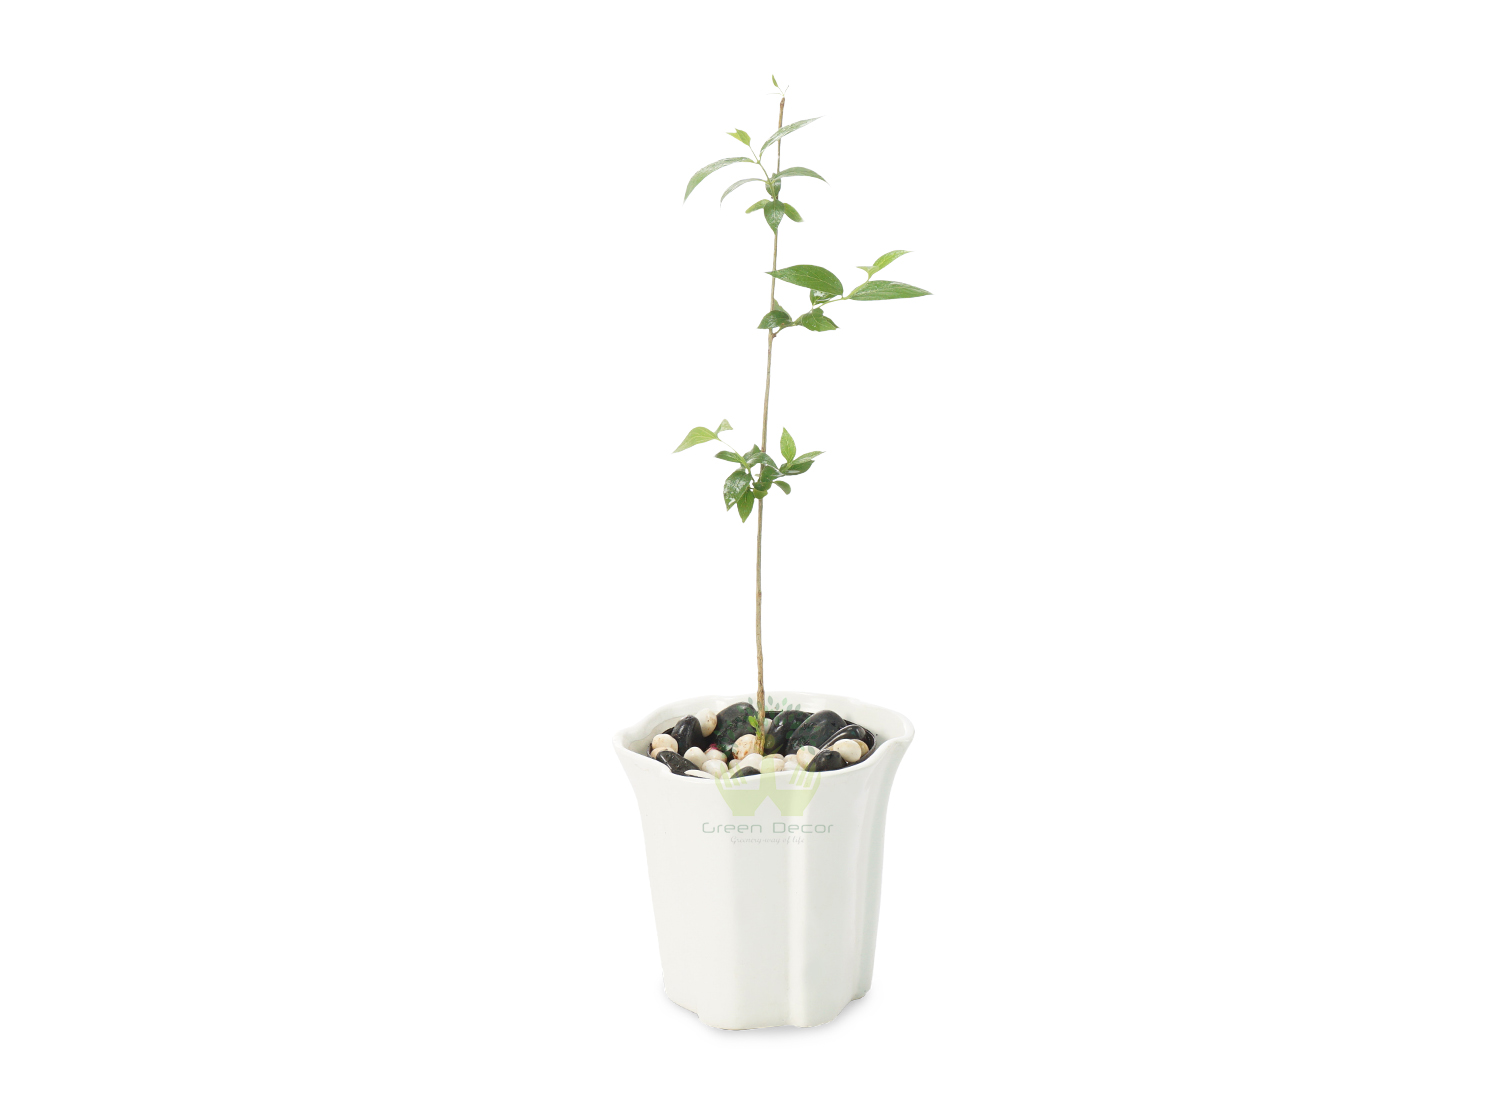 Buy Harshringar Plants Front View , White Pots and seeds in Delhi NCR by the best online nursery shop Greendecor.